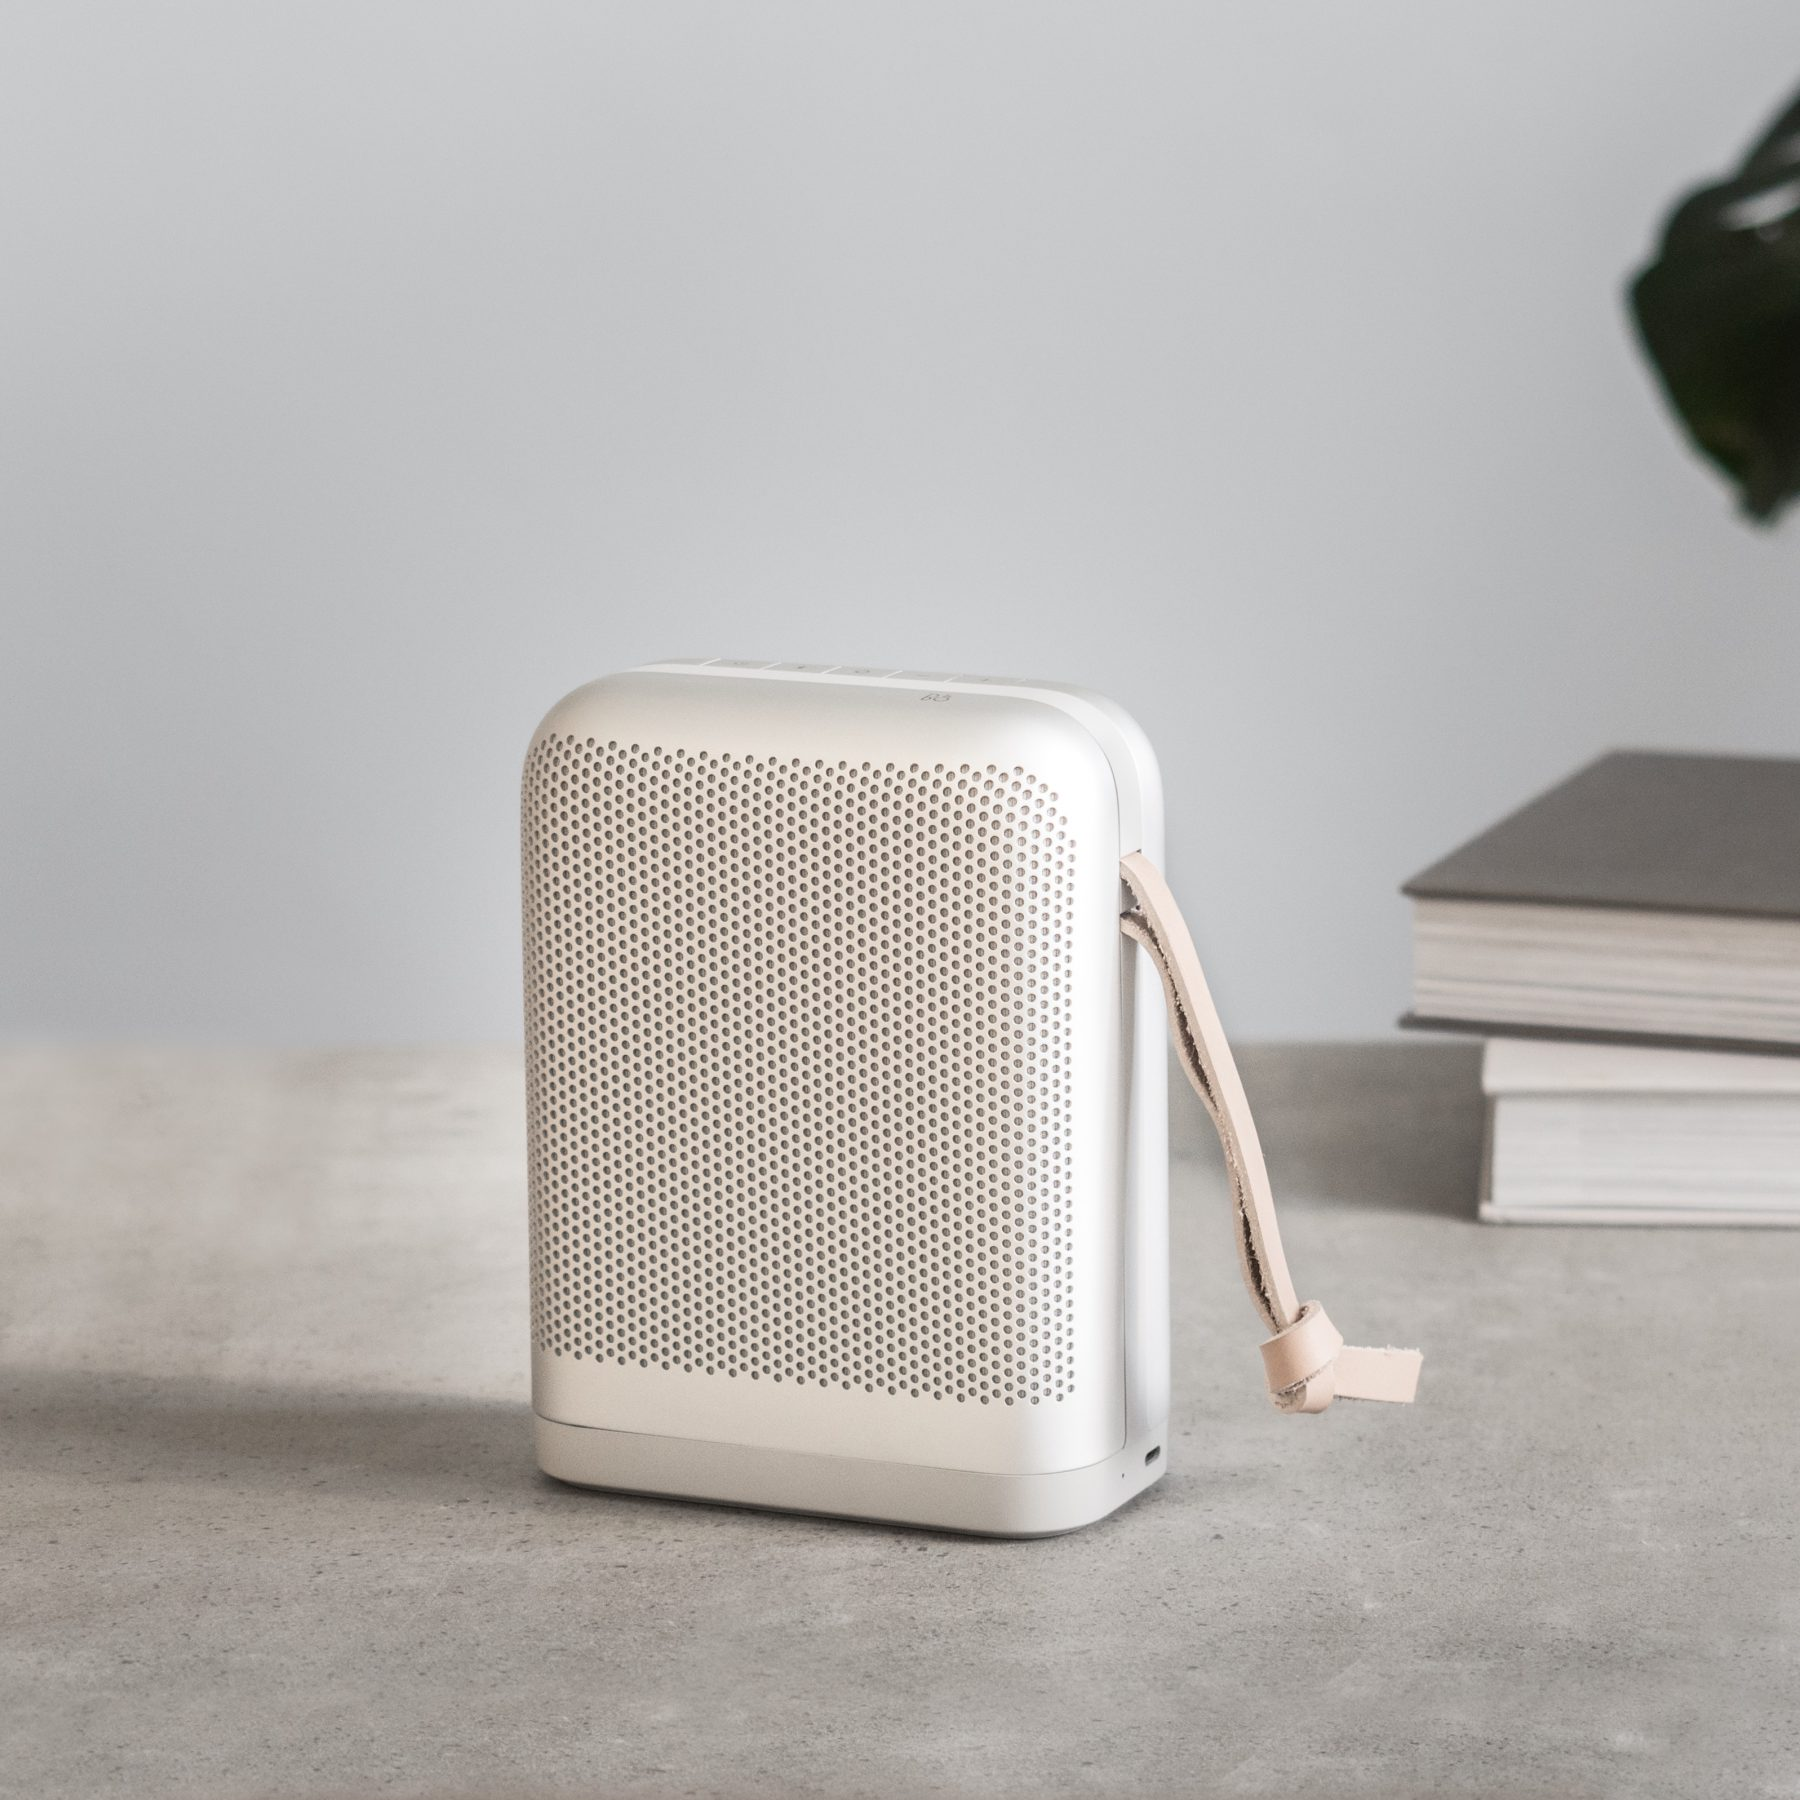 BANG-OLUFSEN-BEOPLAY-P6-PORTABLE-BLUETOOTH-SPEAKER-1